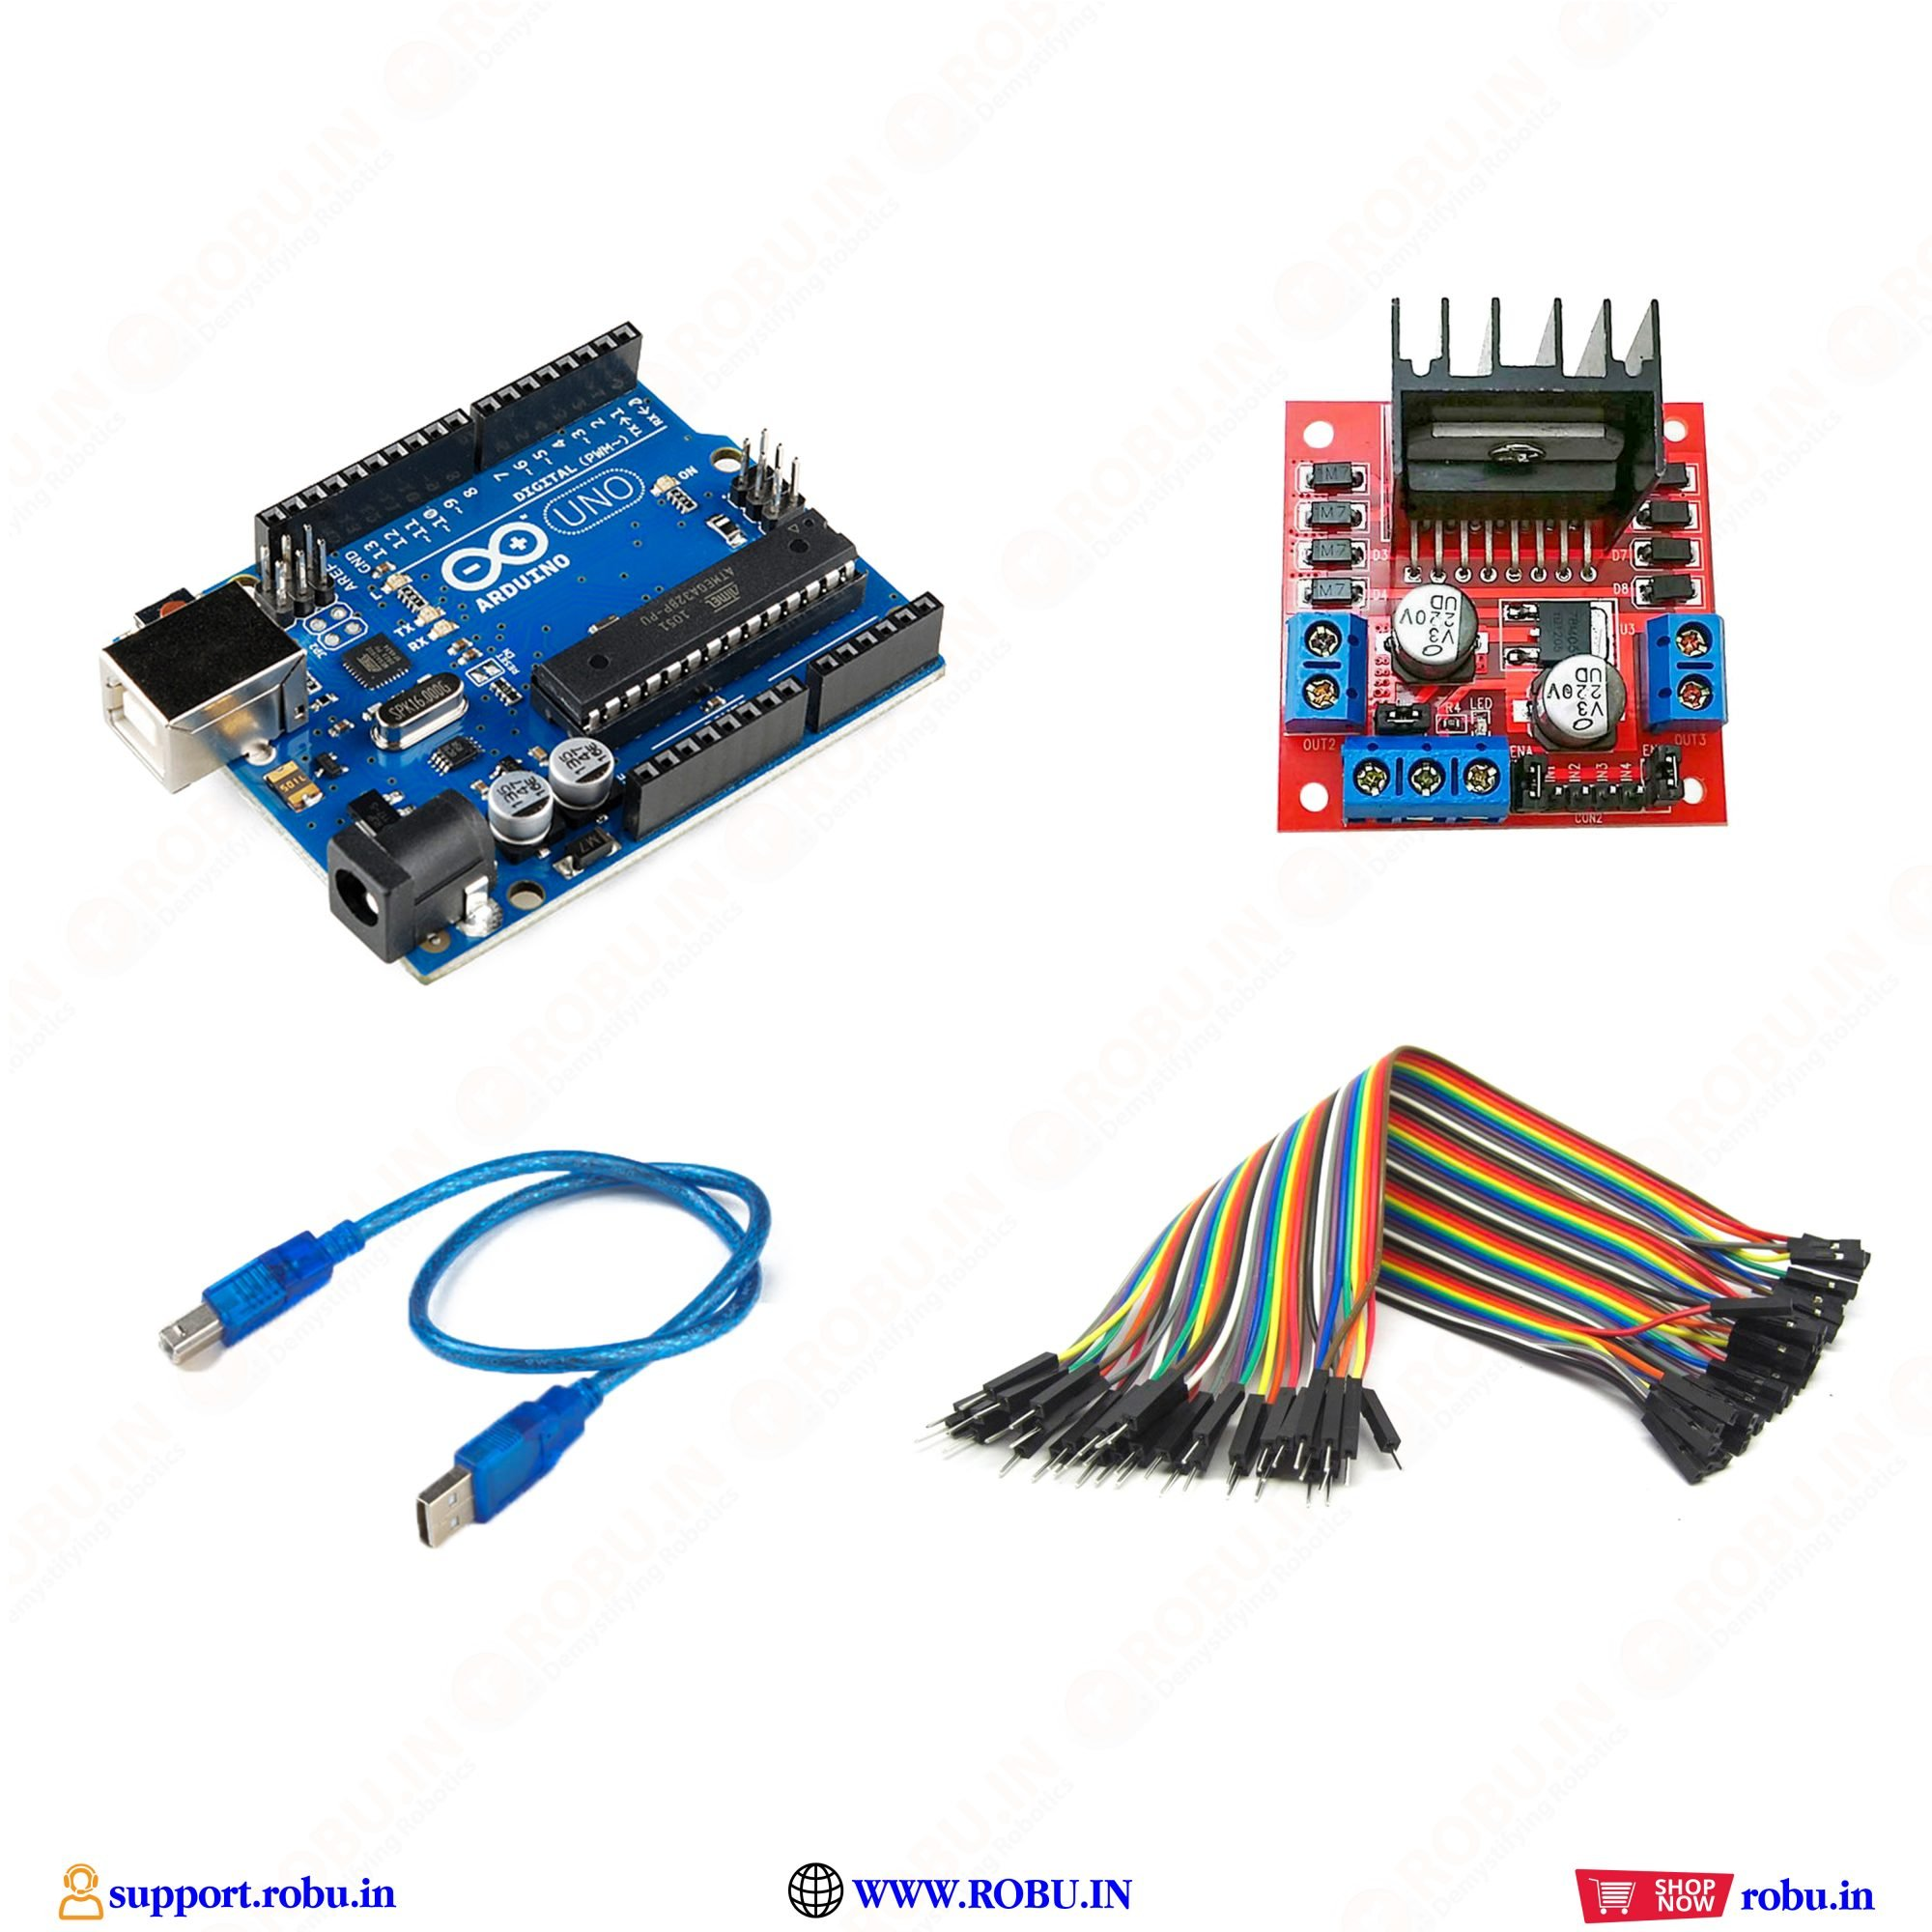 EasyMech Warrior Chassis Complete Combo Kit